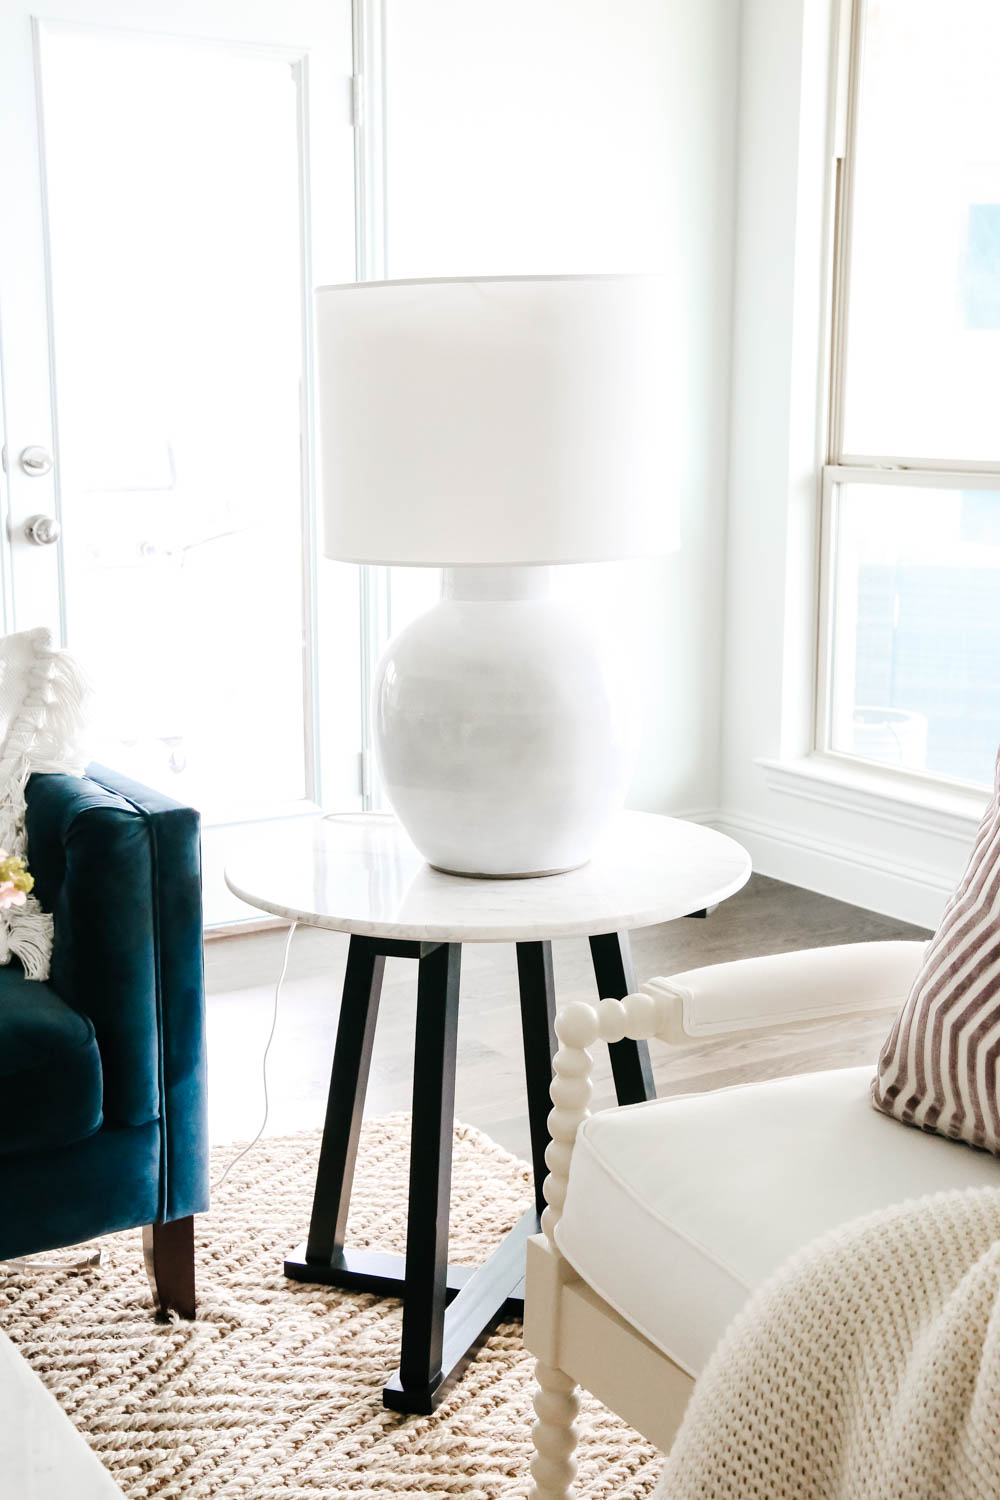 Side table from McGee and Co collection at Target, living room inspiration. #livingroom #livingroomdecor #hometour #ABlissfulNest